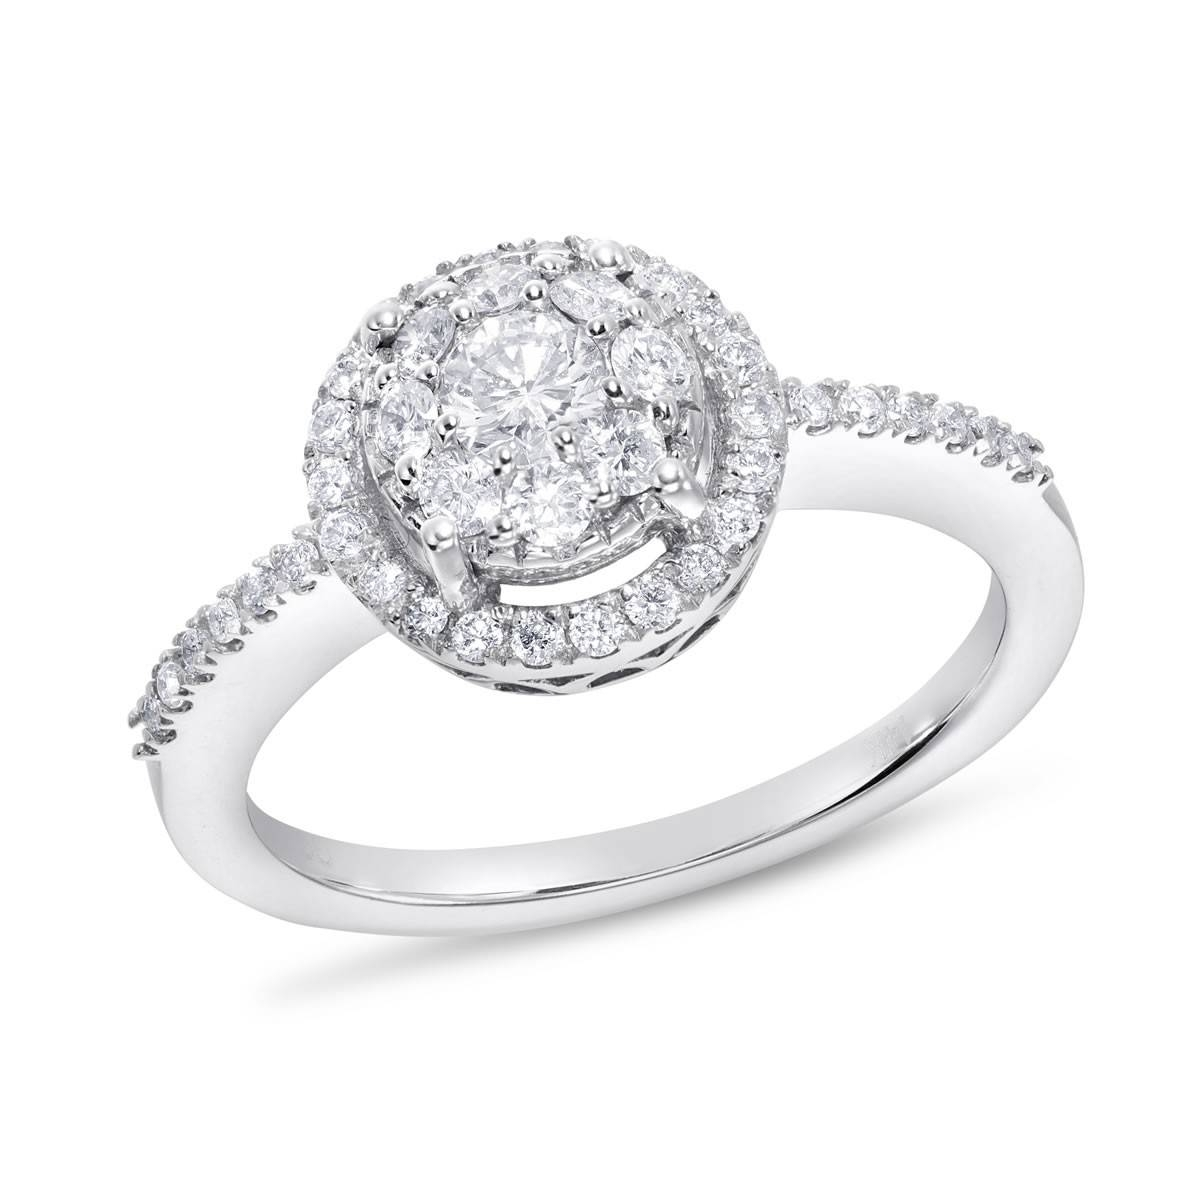 14K White Gold Si Round Diamond Engagement Ring, 5/8 Ctw | Samuels With 5 Diamond Engagement Rings (Gallery 2 of 15)